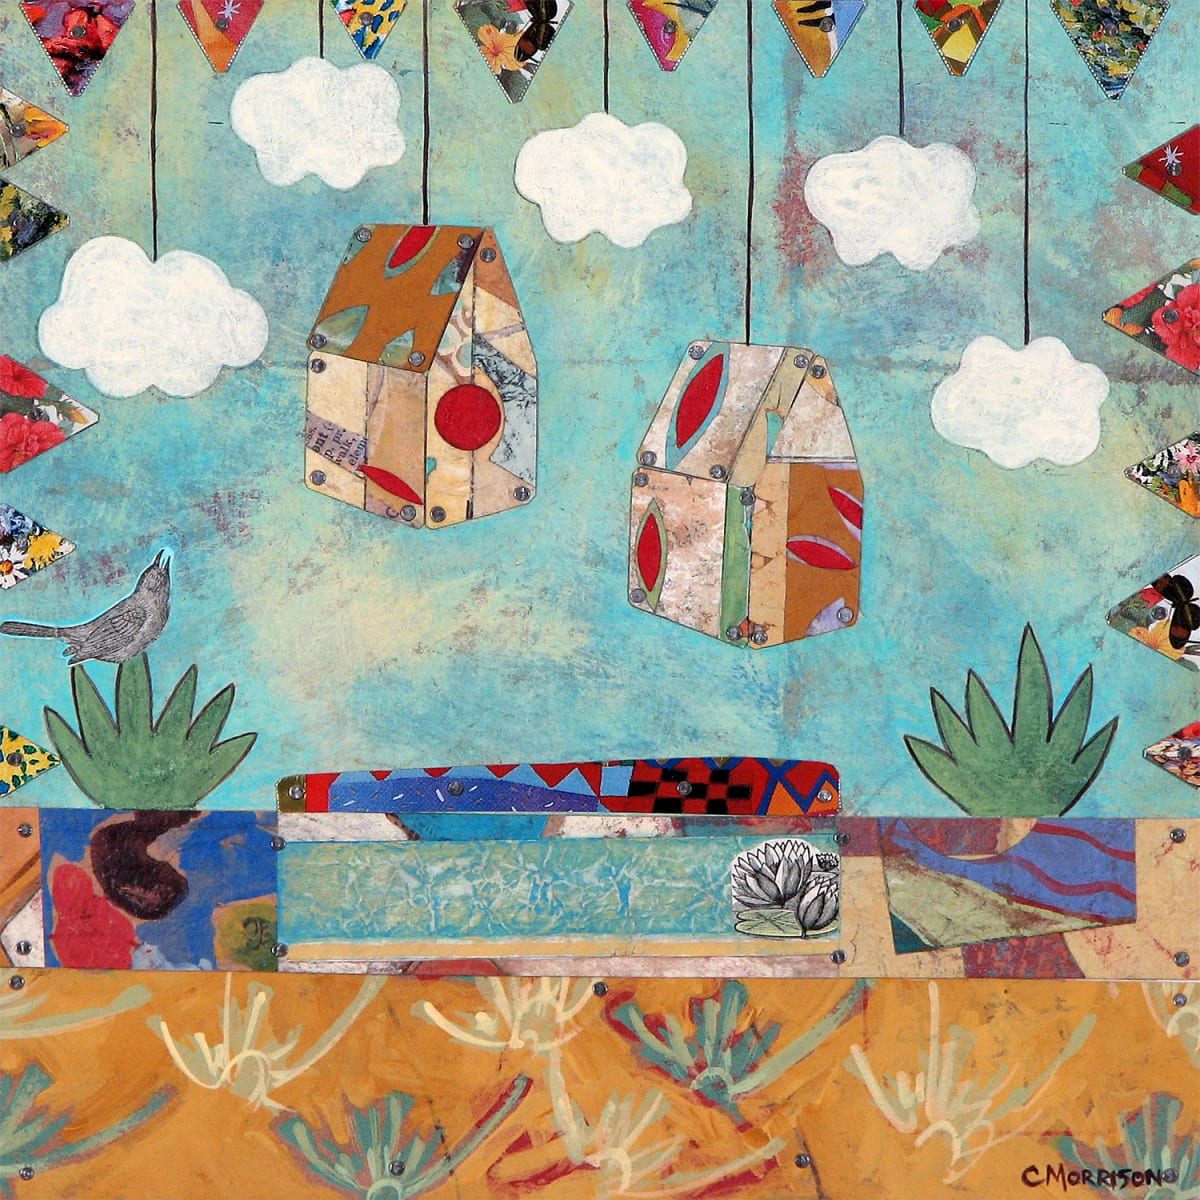 #96 (Unframed print) by Connie Morrison